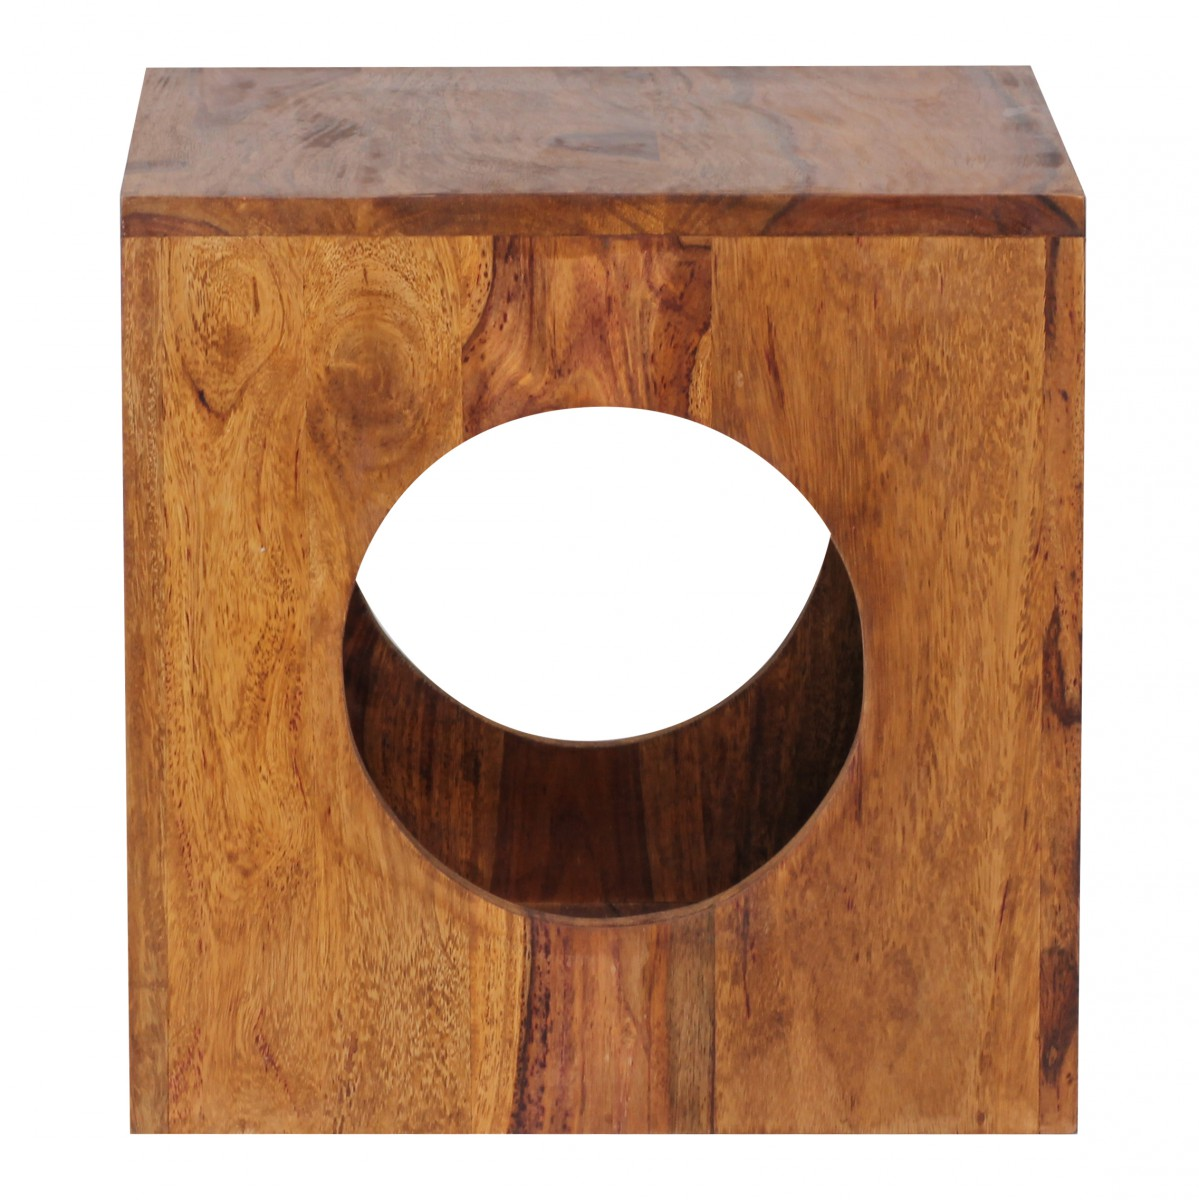 Wohnling sheesham solid wood side table 35 x 35 cm cube for Solid wood cube side table